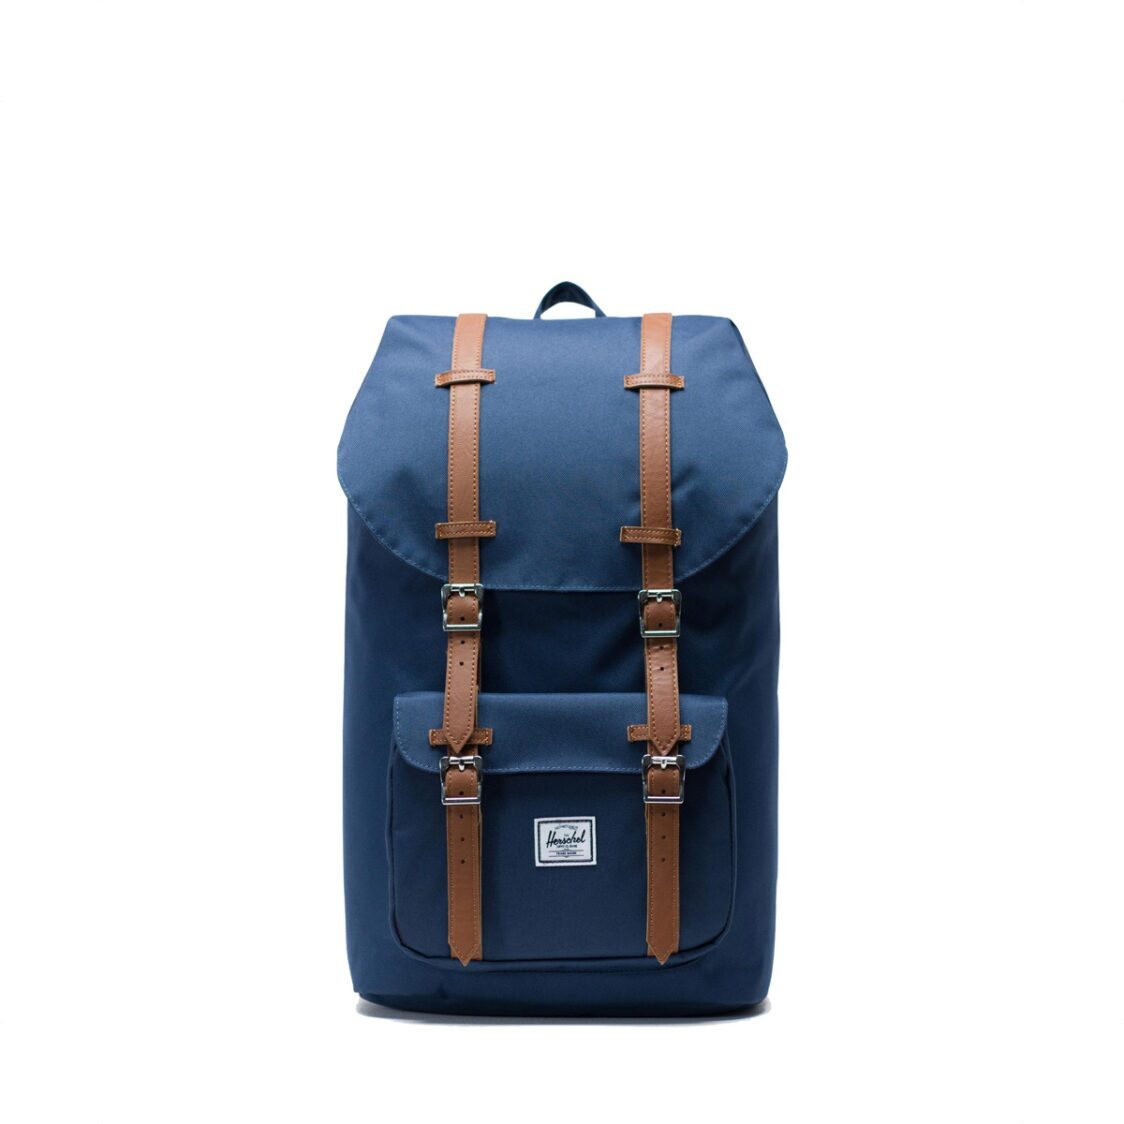 Herschel Little America NavyTan Synthetic Leather Backpack 10014-00007-OS